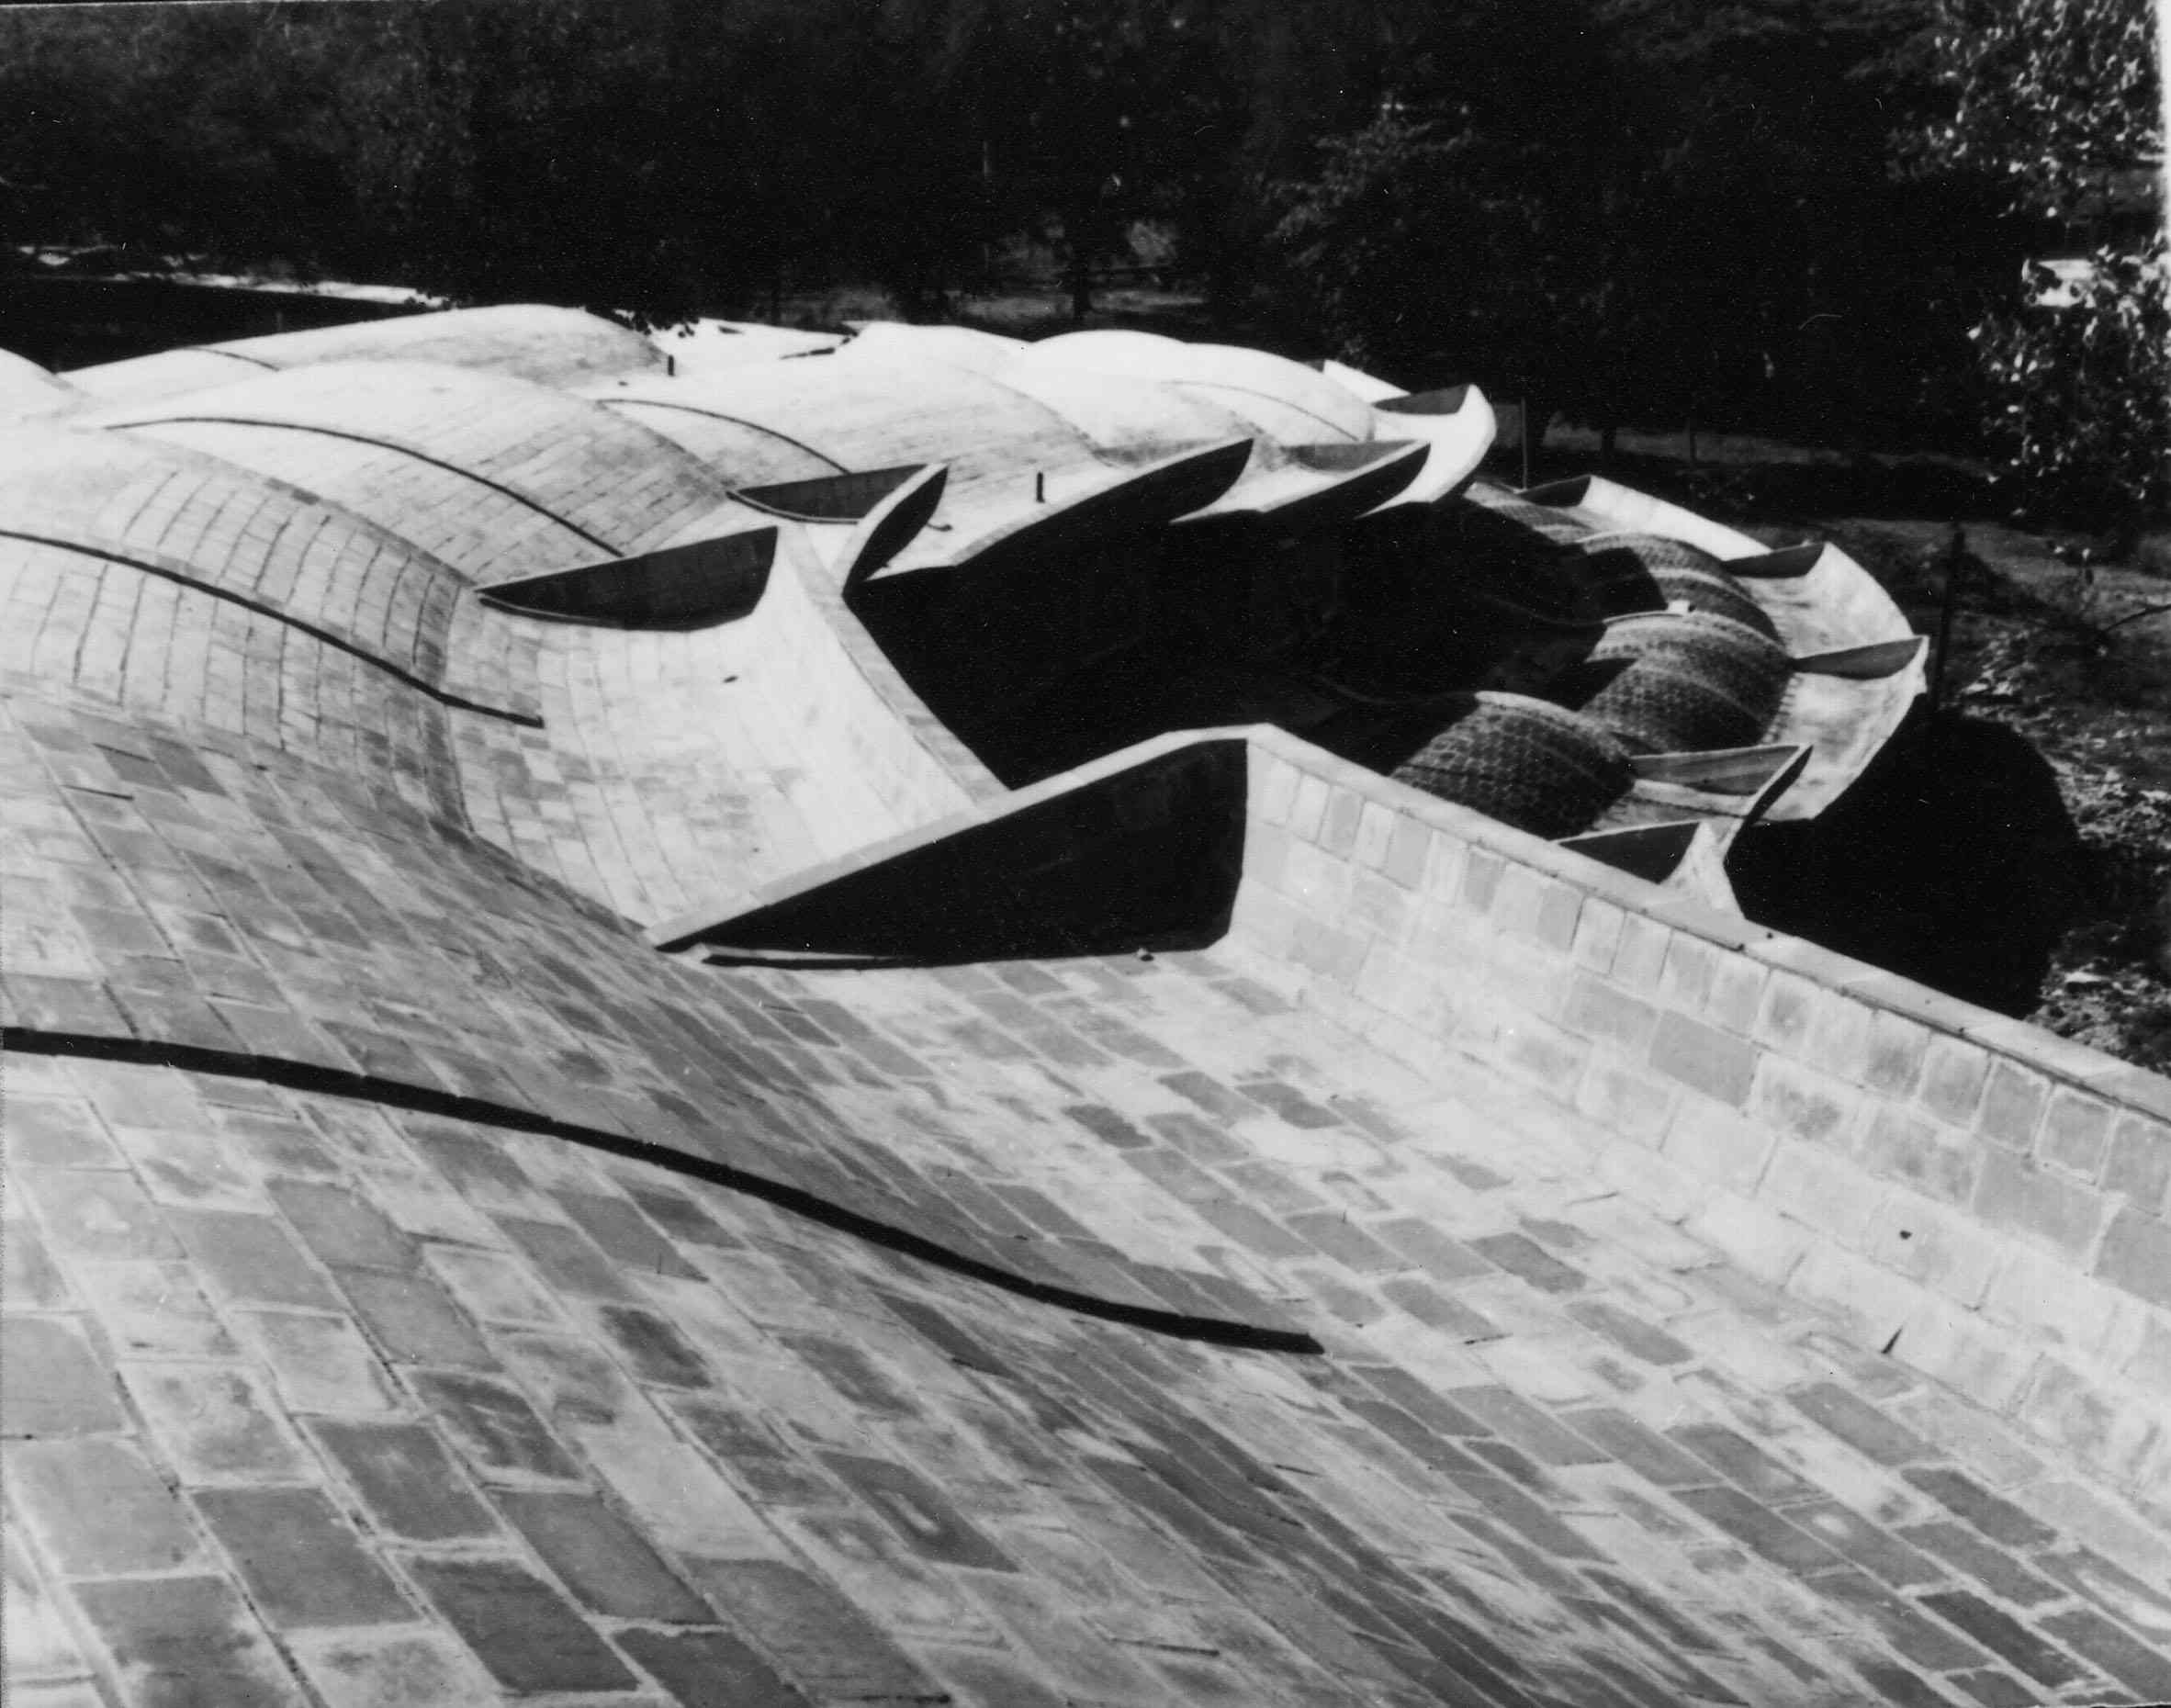 07-school-of-music-roofs-micelena-low-res